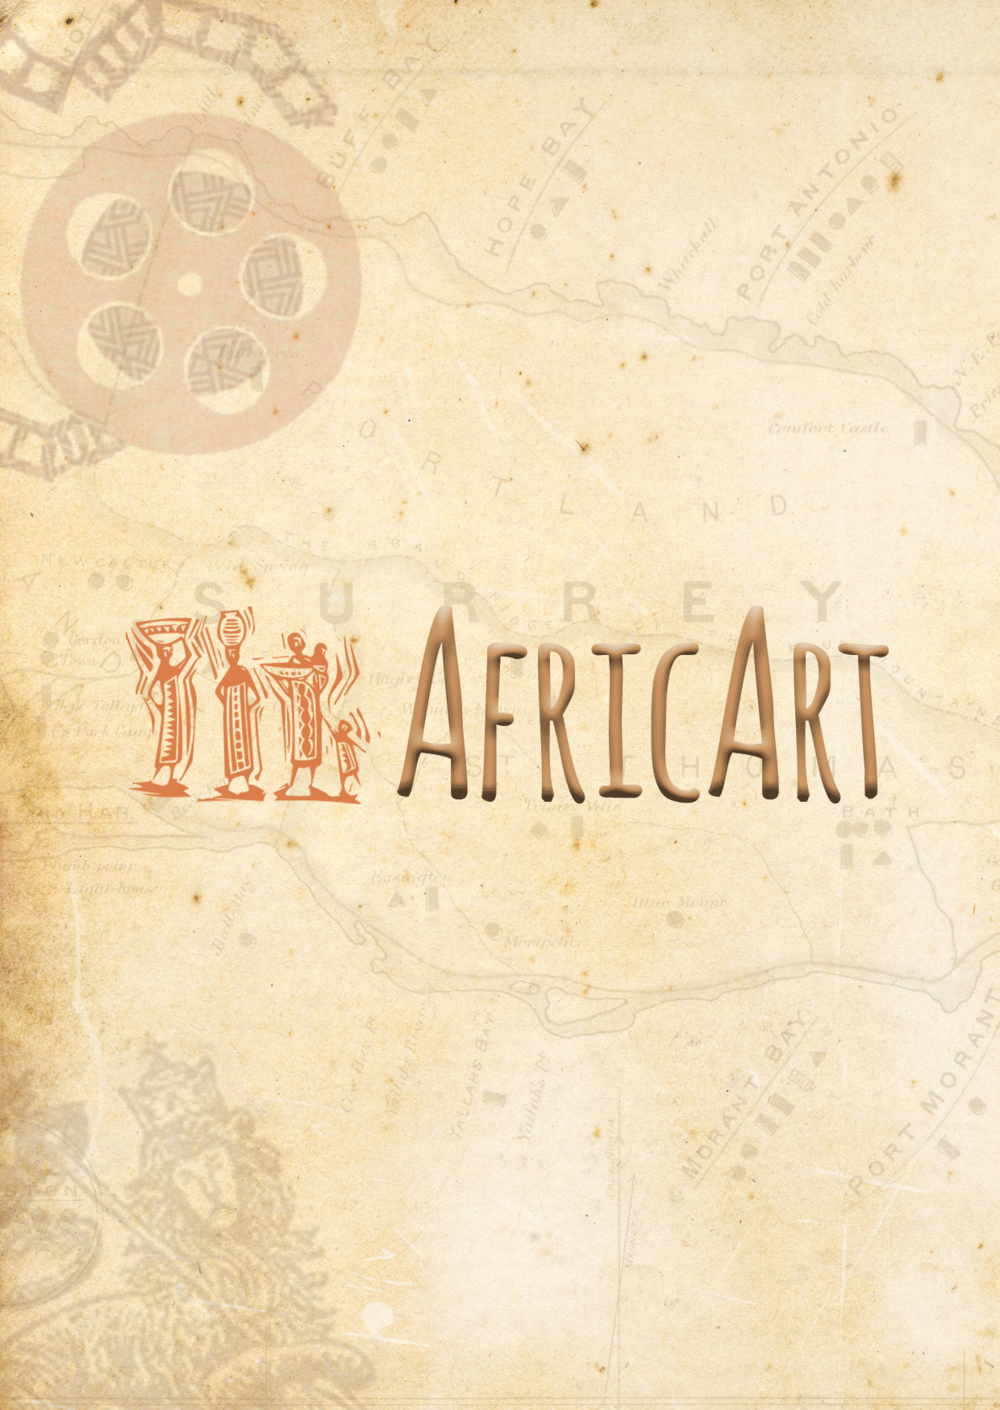 AfricArt - June 30th - July 2nd, 2017 — Great Huts Resort - Paradise